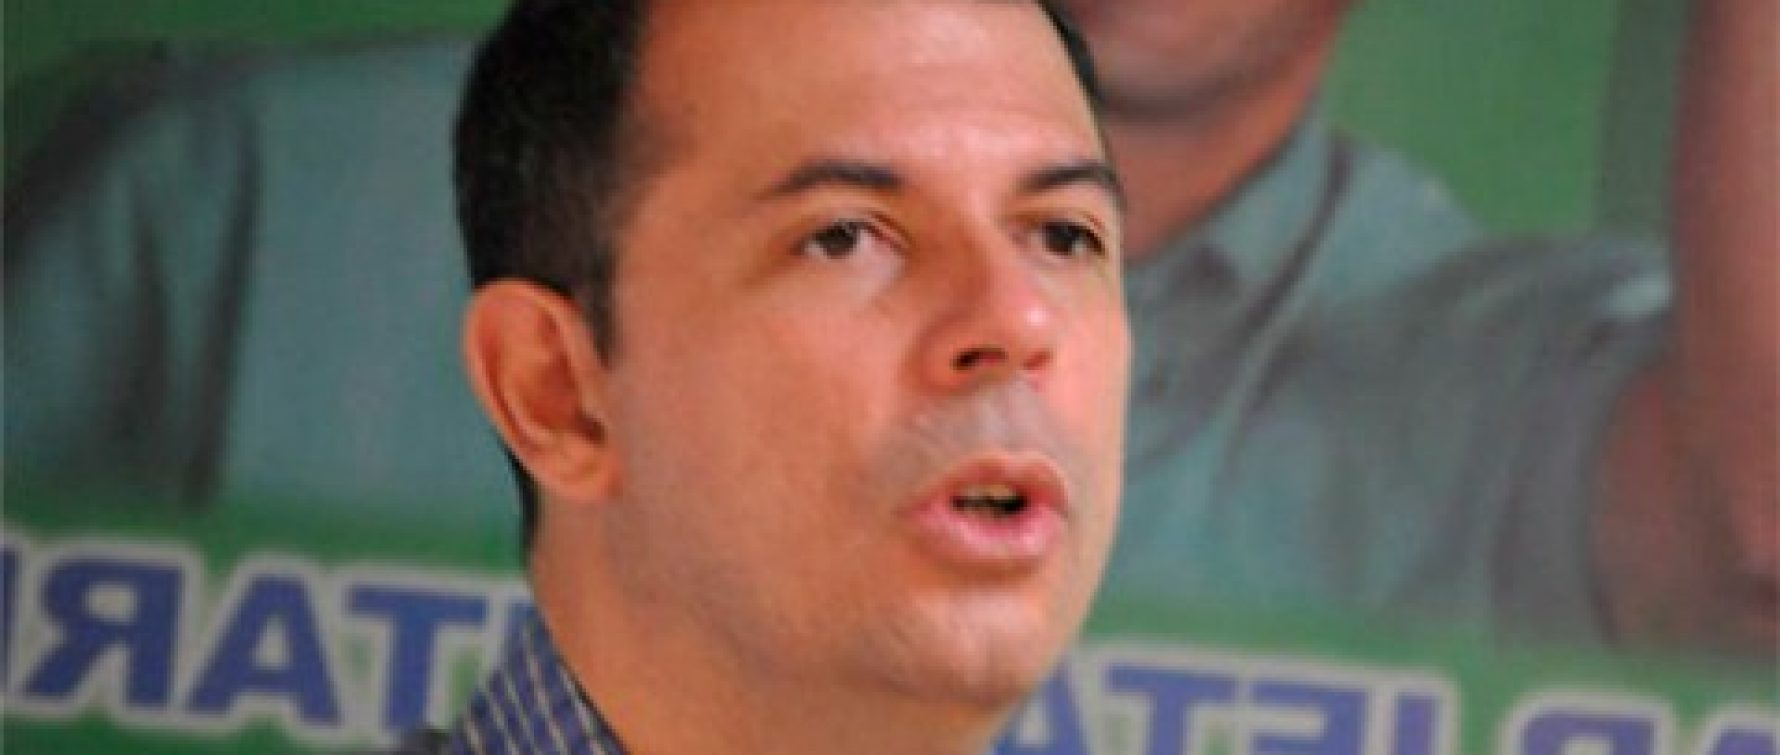 CDI-IDC denounces the detention of Roberto Enriquez, National President of the Copei Party and demands his immediate release